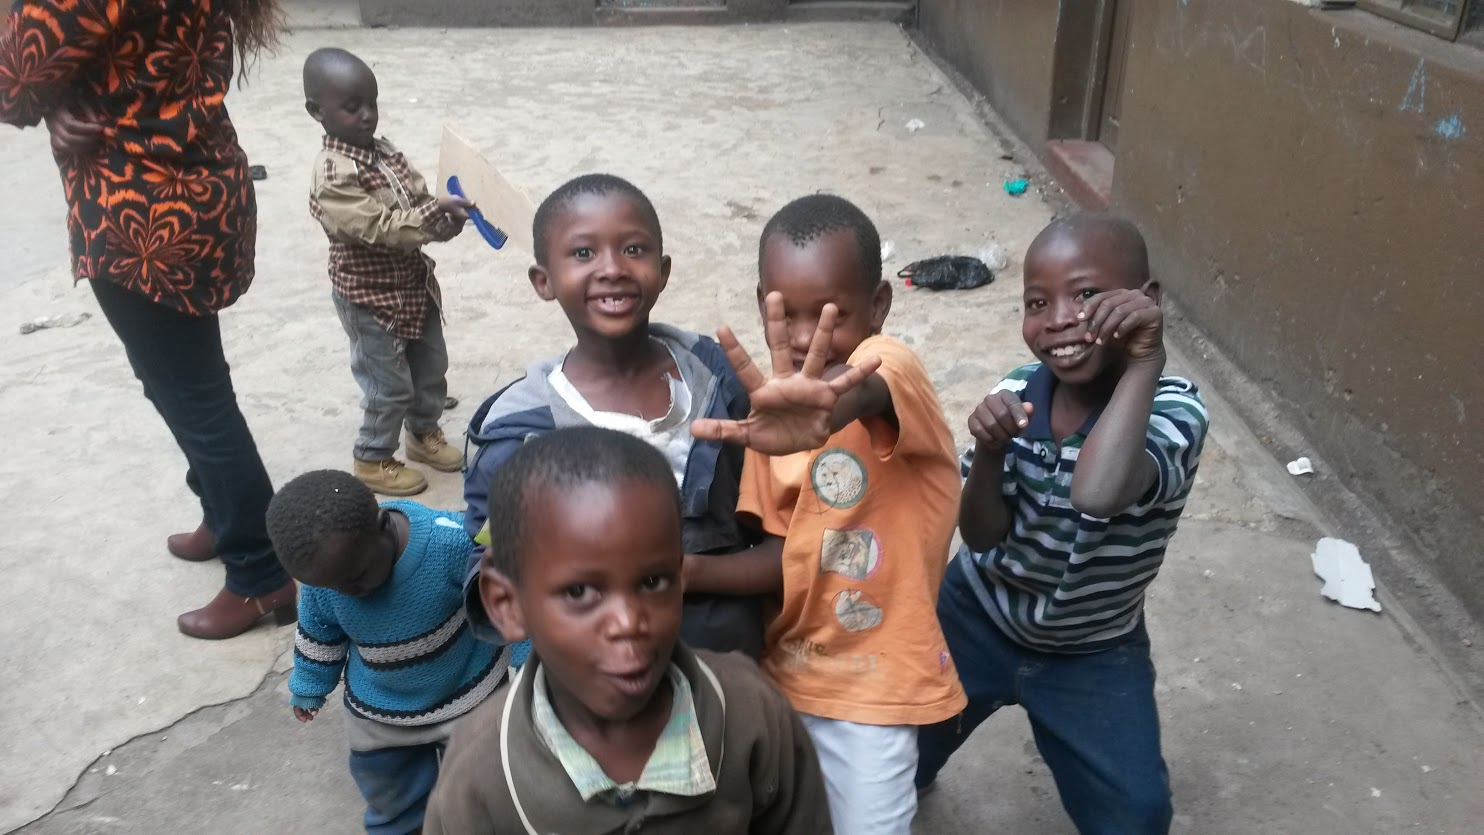 Some of the children who get their schooling at Mamma Africa.